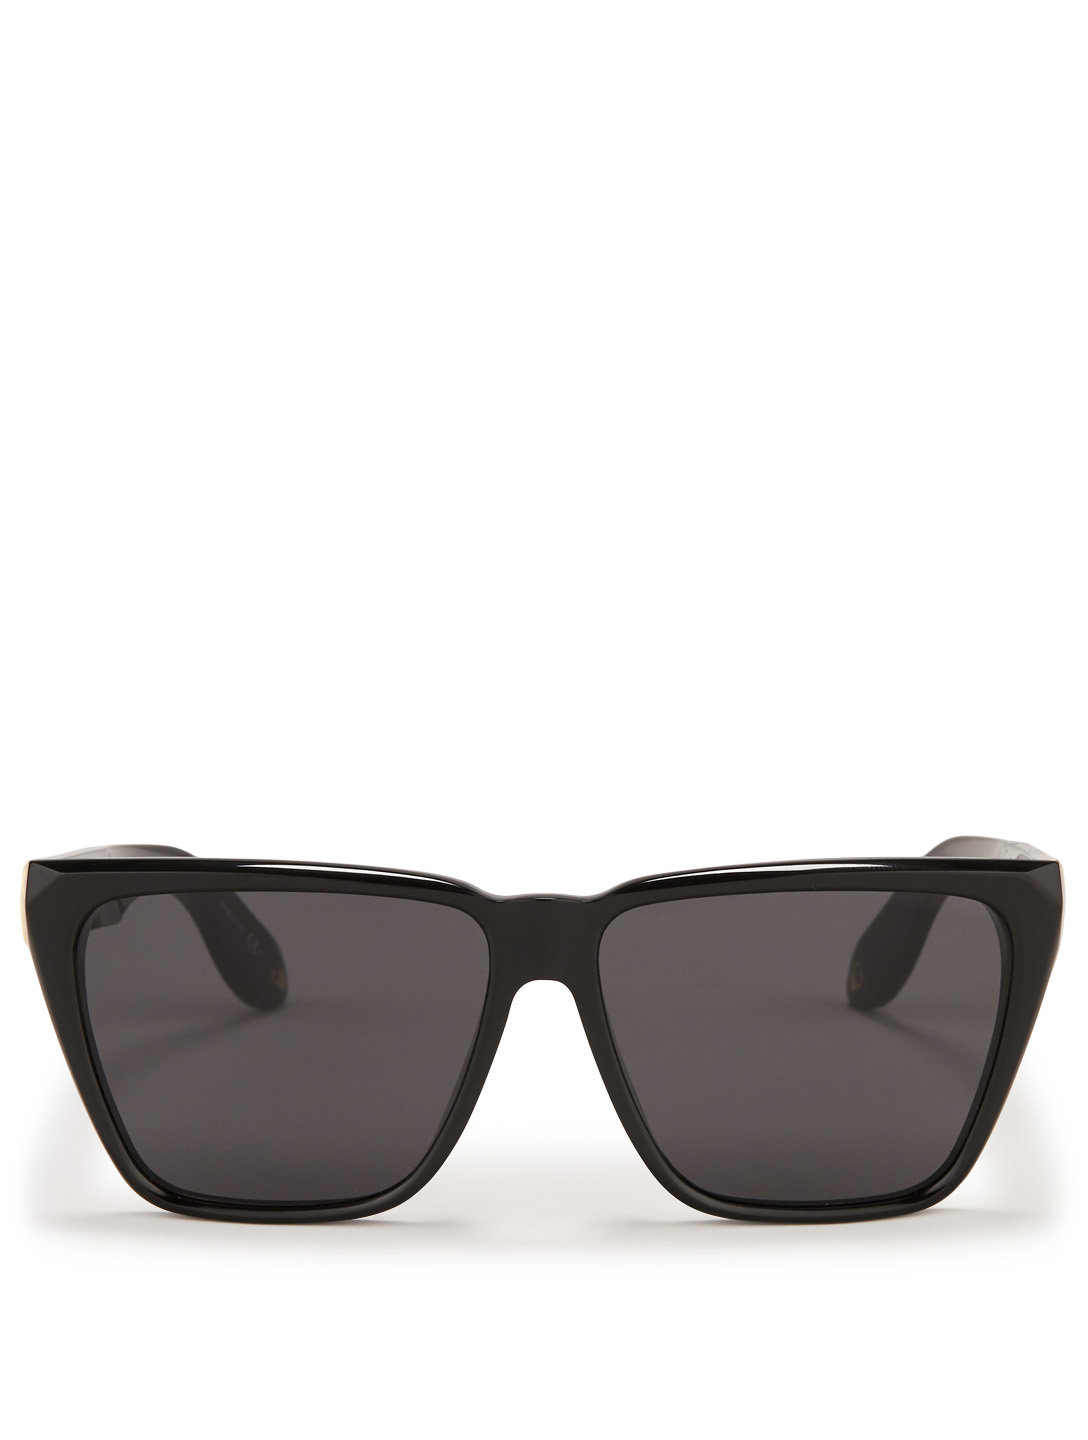 GIVENCHY Square Sunglasses Women's Black